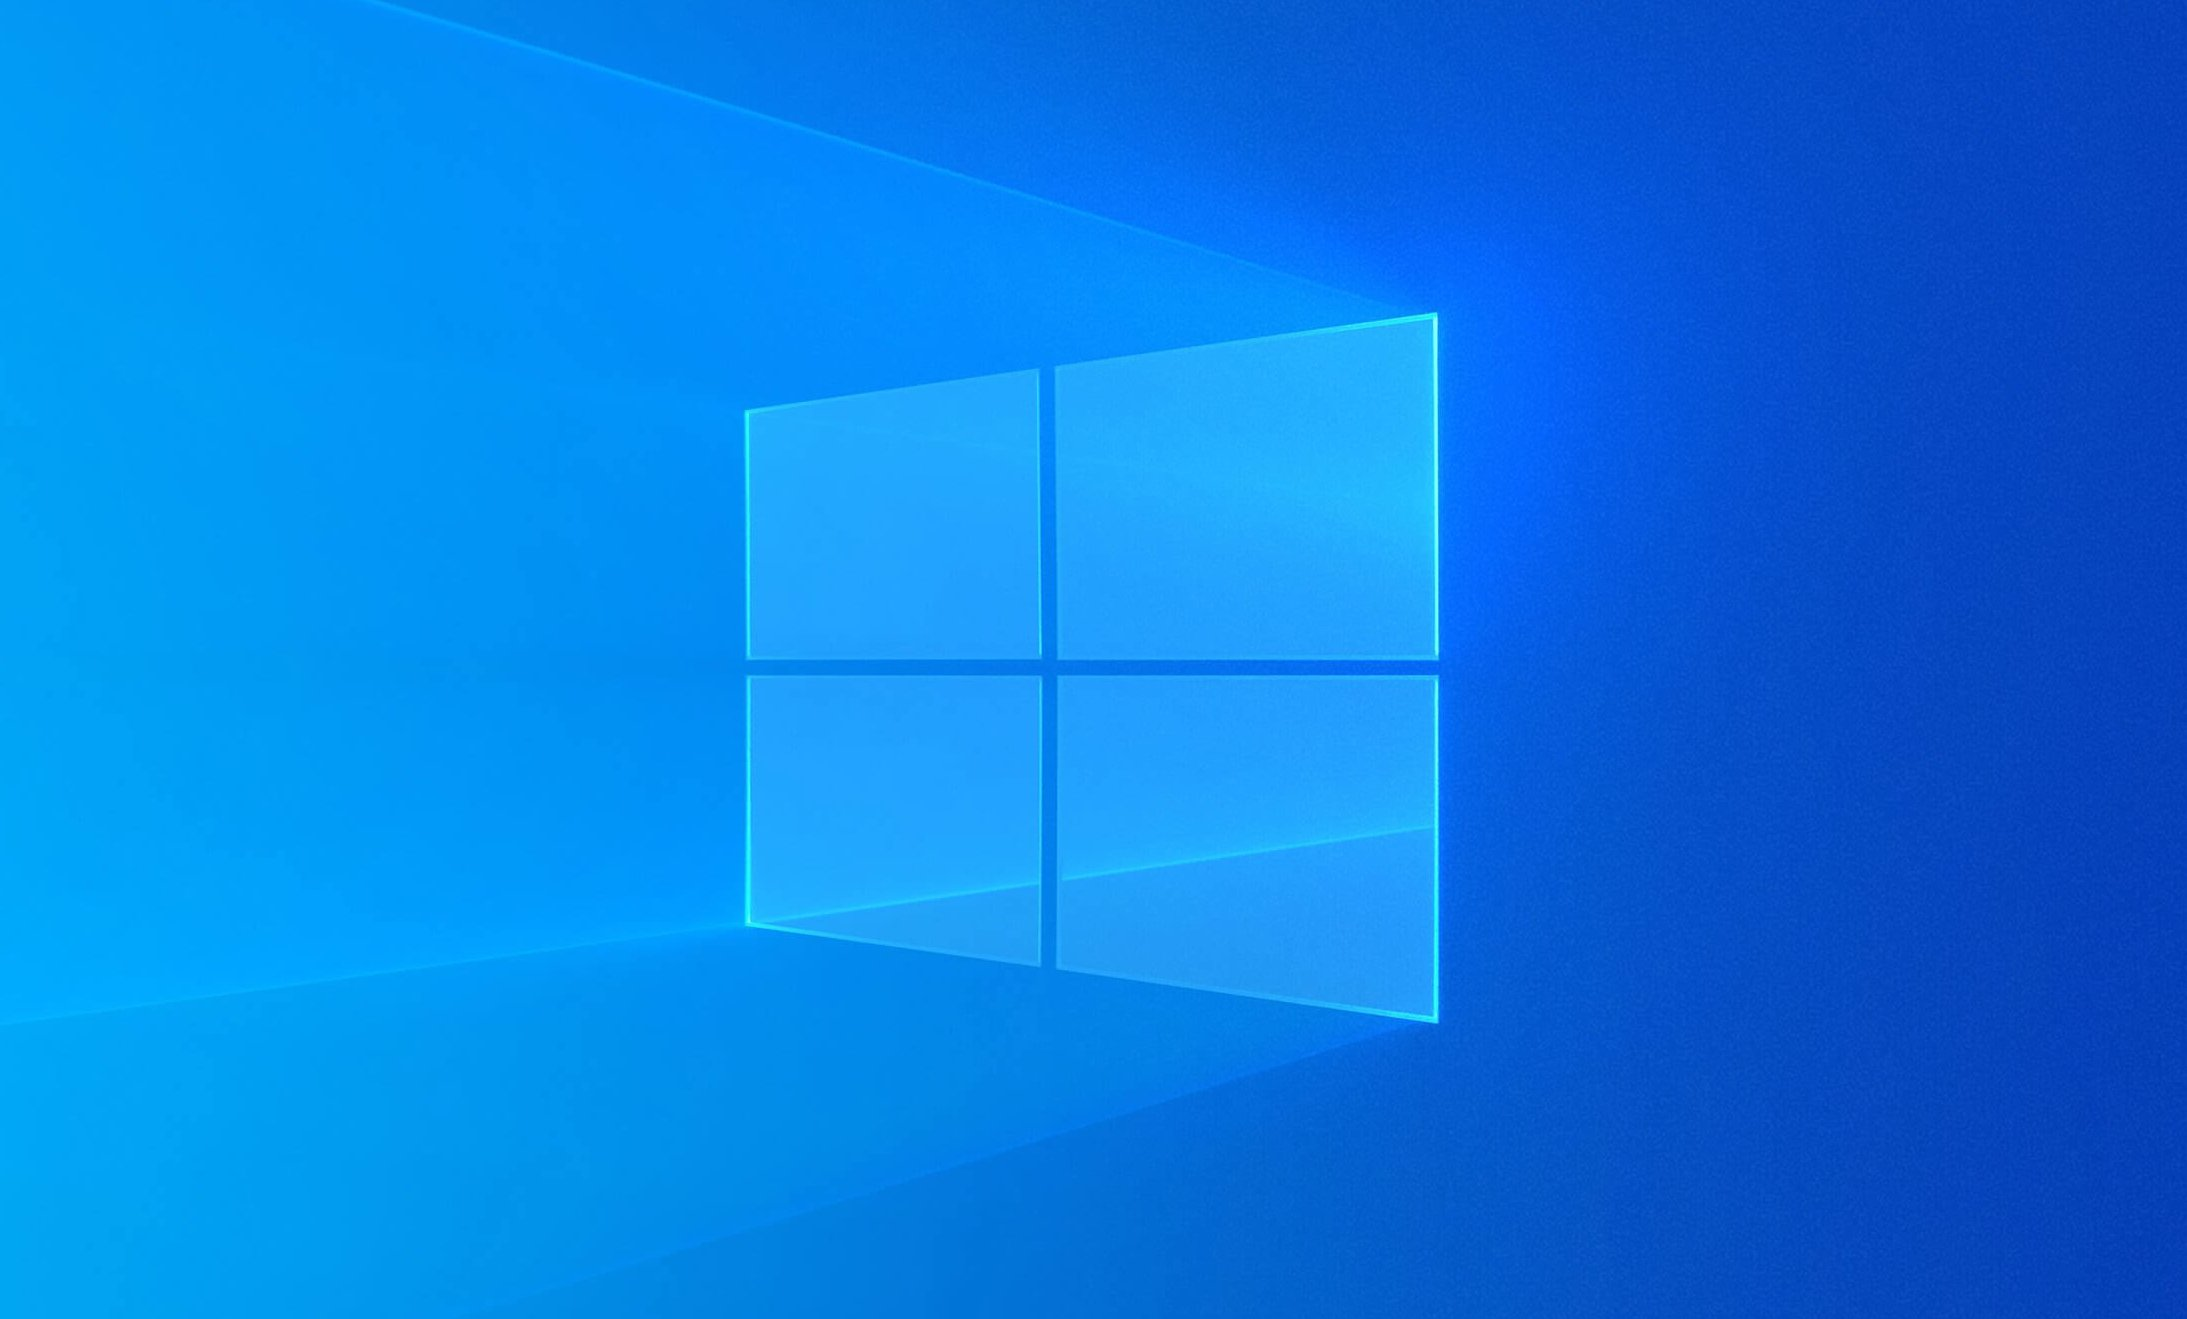 Find Windows 10 Product Key Using Command Line